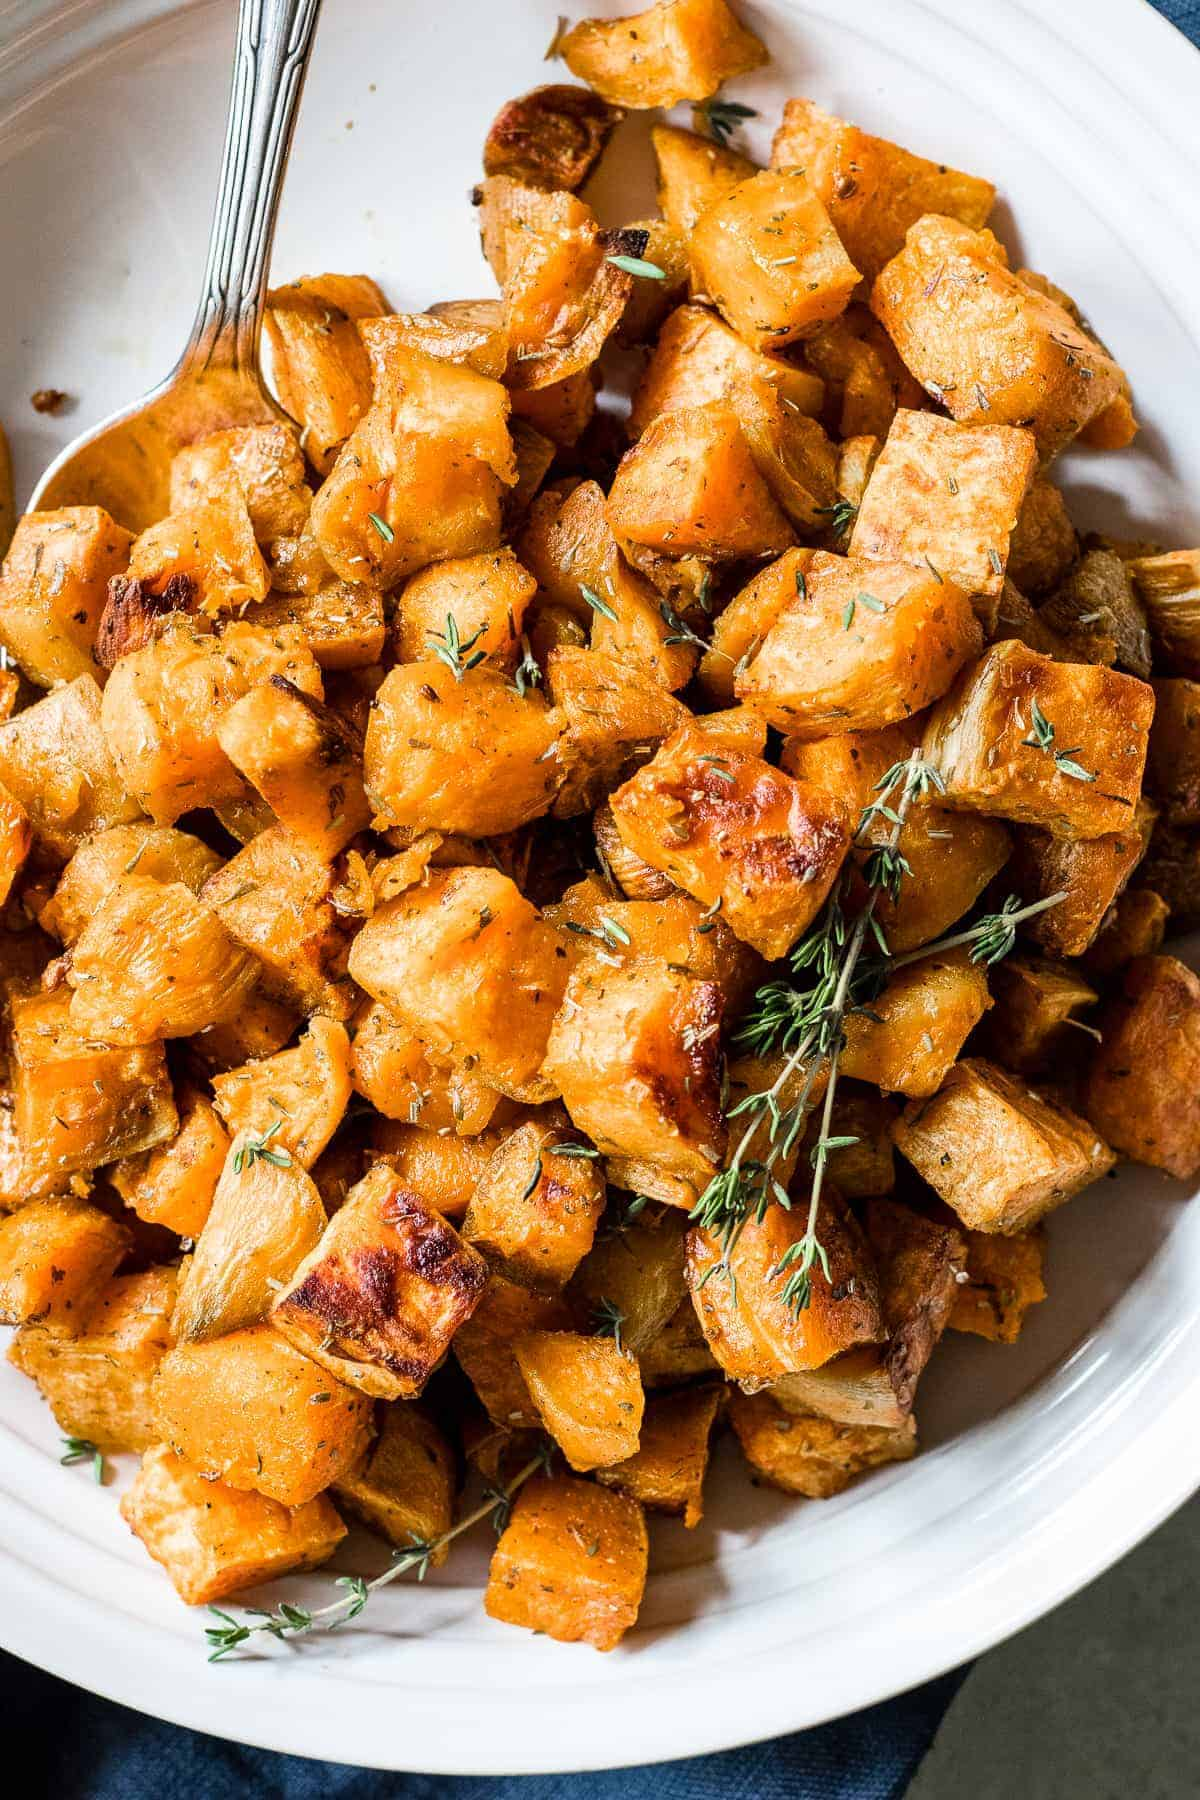 Tender, caramelized Herb Roasted Sweet Potatoes made with olive oil, sea salt and a special blend of herbs. This side dish will be the star of Thanksgiving!